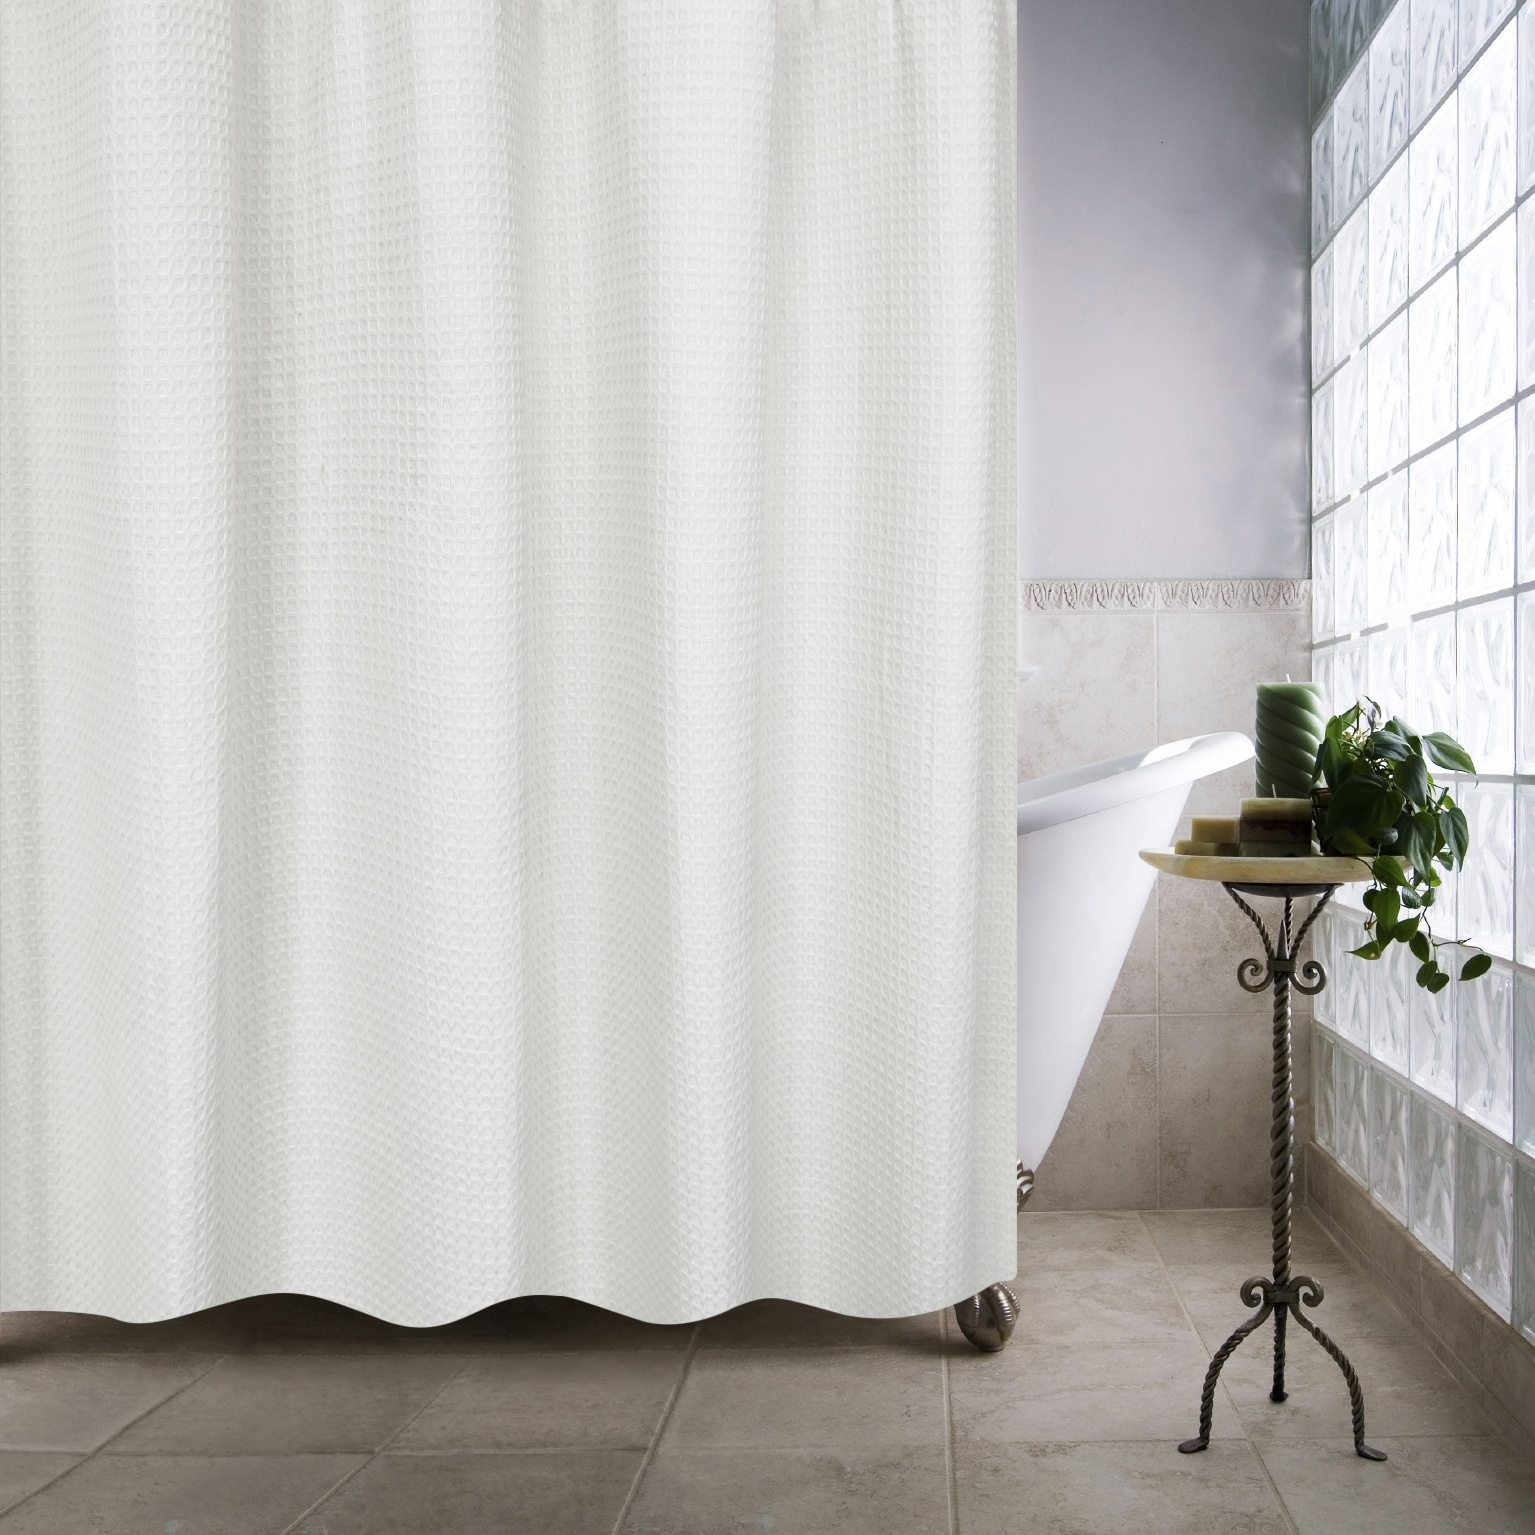 taylor curtain bed adela home micro mills shower lauren and fiber s bath spa curtains beddington image oxford